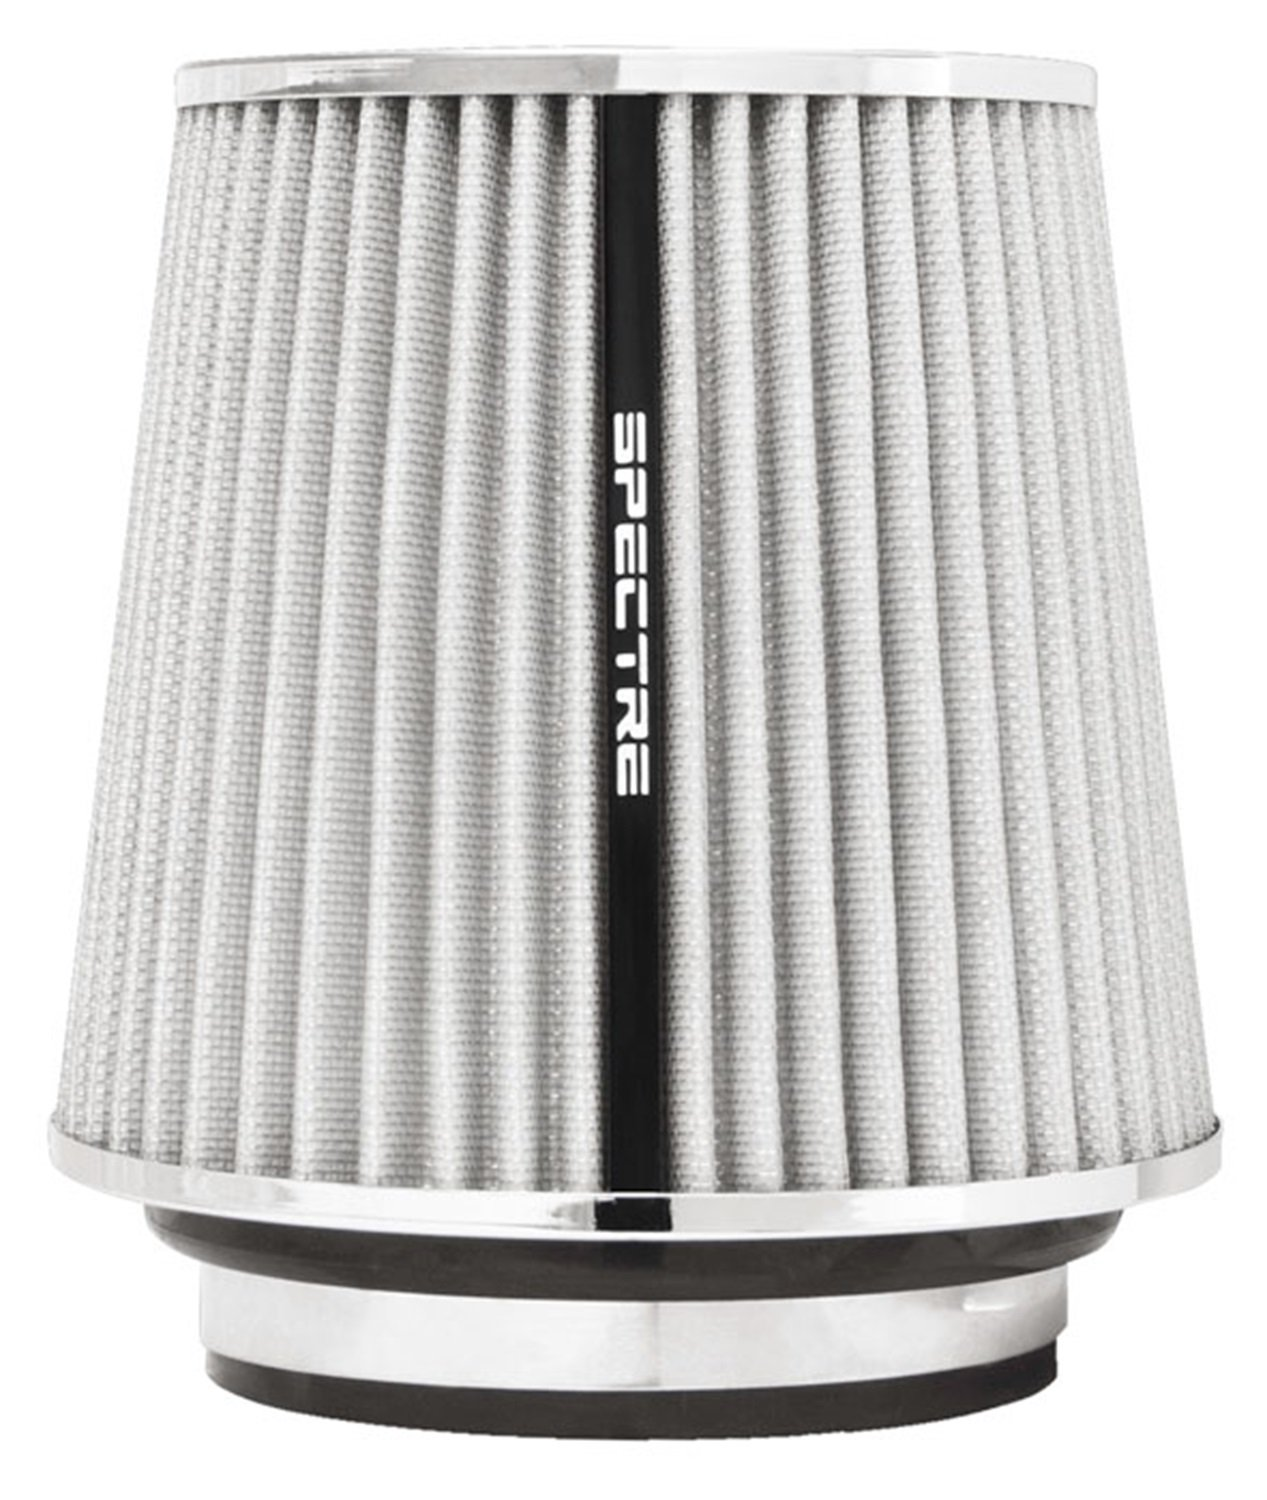 102 mm//89 mm//76 mm Height; 6 in Top 121 mm Flange ID; 6.719 in Base; 4.75 in 152 mm Spectre Performance 8136 Universal Clamp-On Air Filter: Round Tapered; 3 in//3.5 in//4 in 171 mm